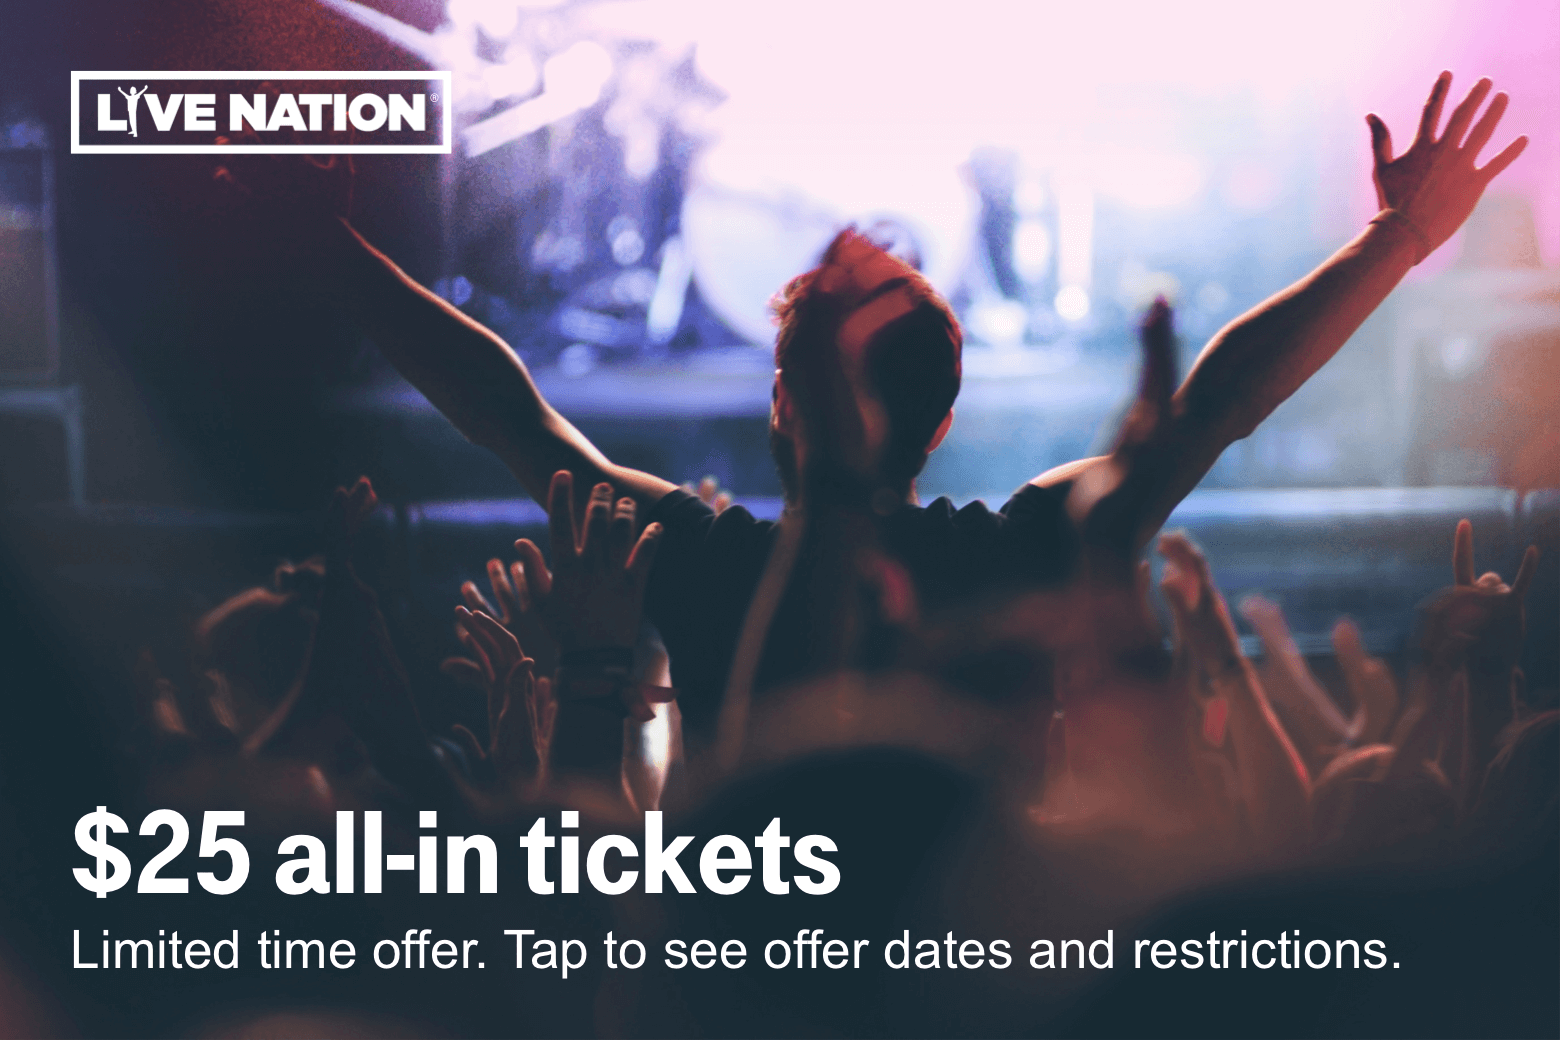 Live Nation. $25 all-in tickets. Limited time offer. Tap to see offer dates and restrictions.